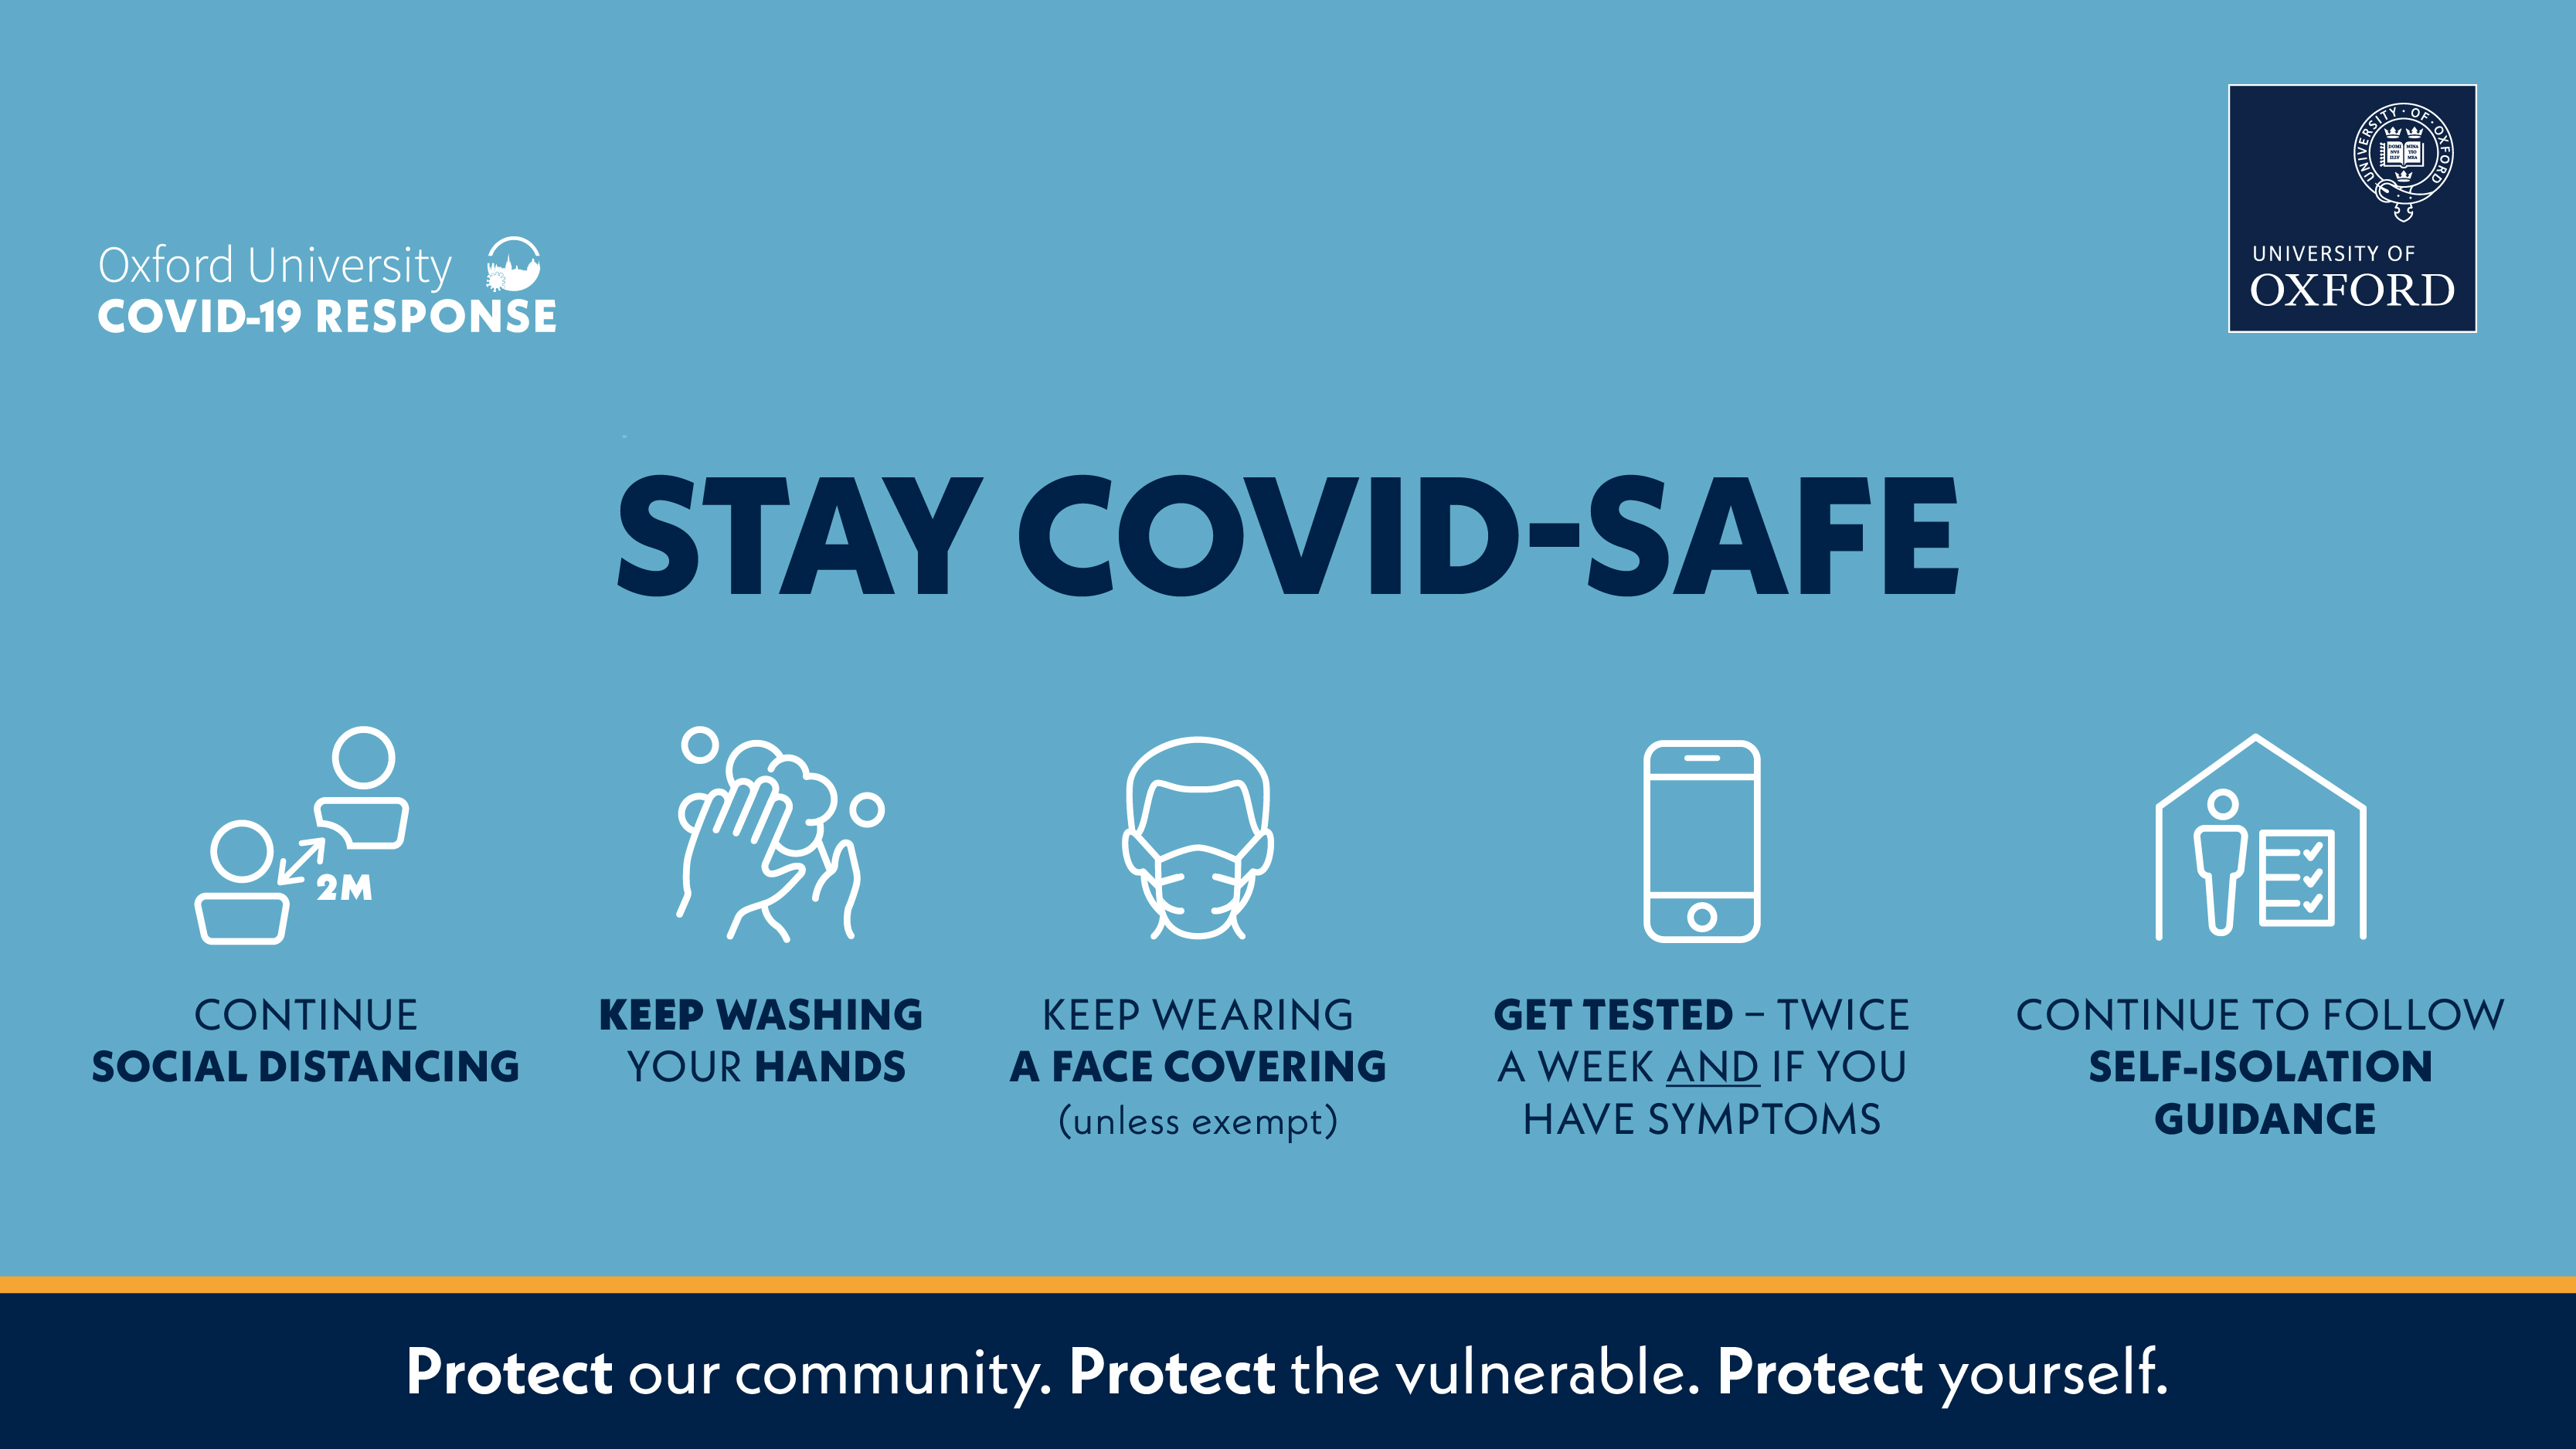 An information banner on Oxford University's COVID-19 Response with the main message